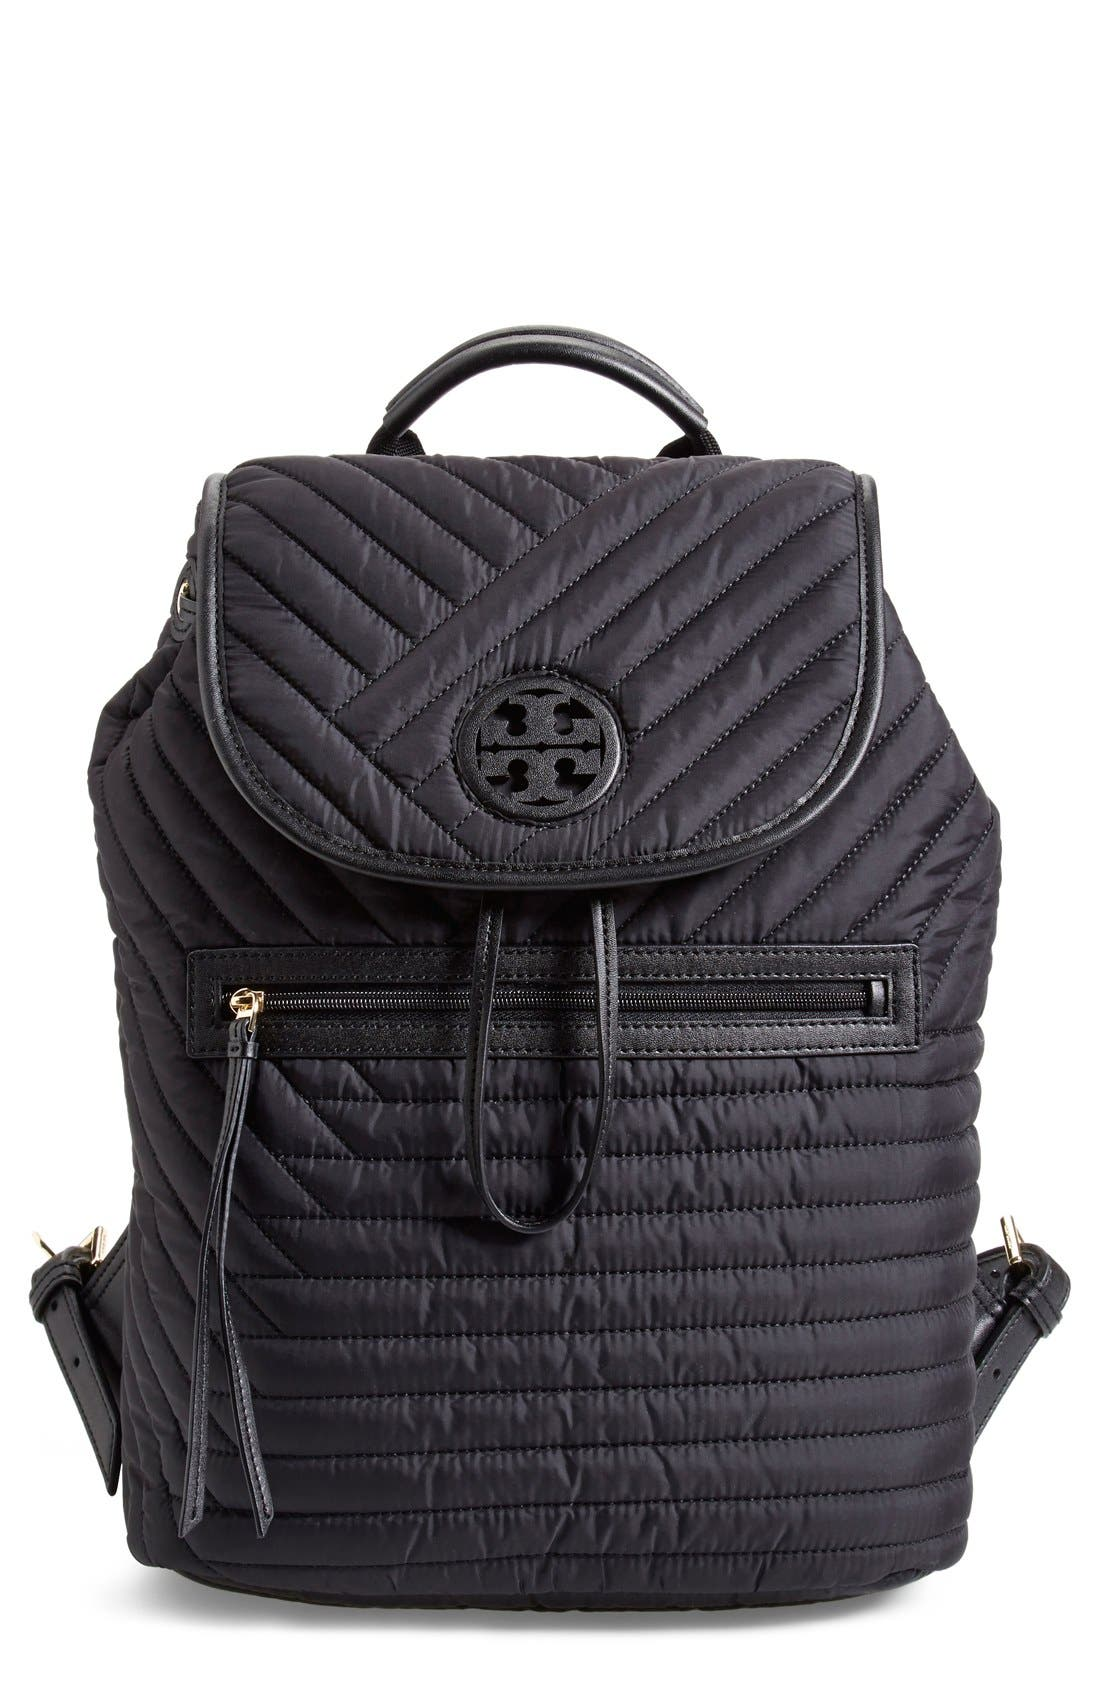 Alternate Image 1 Selected - Tory Burch Quilted Nylon Backpack